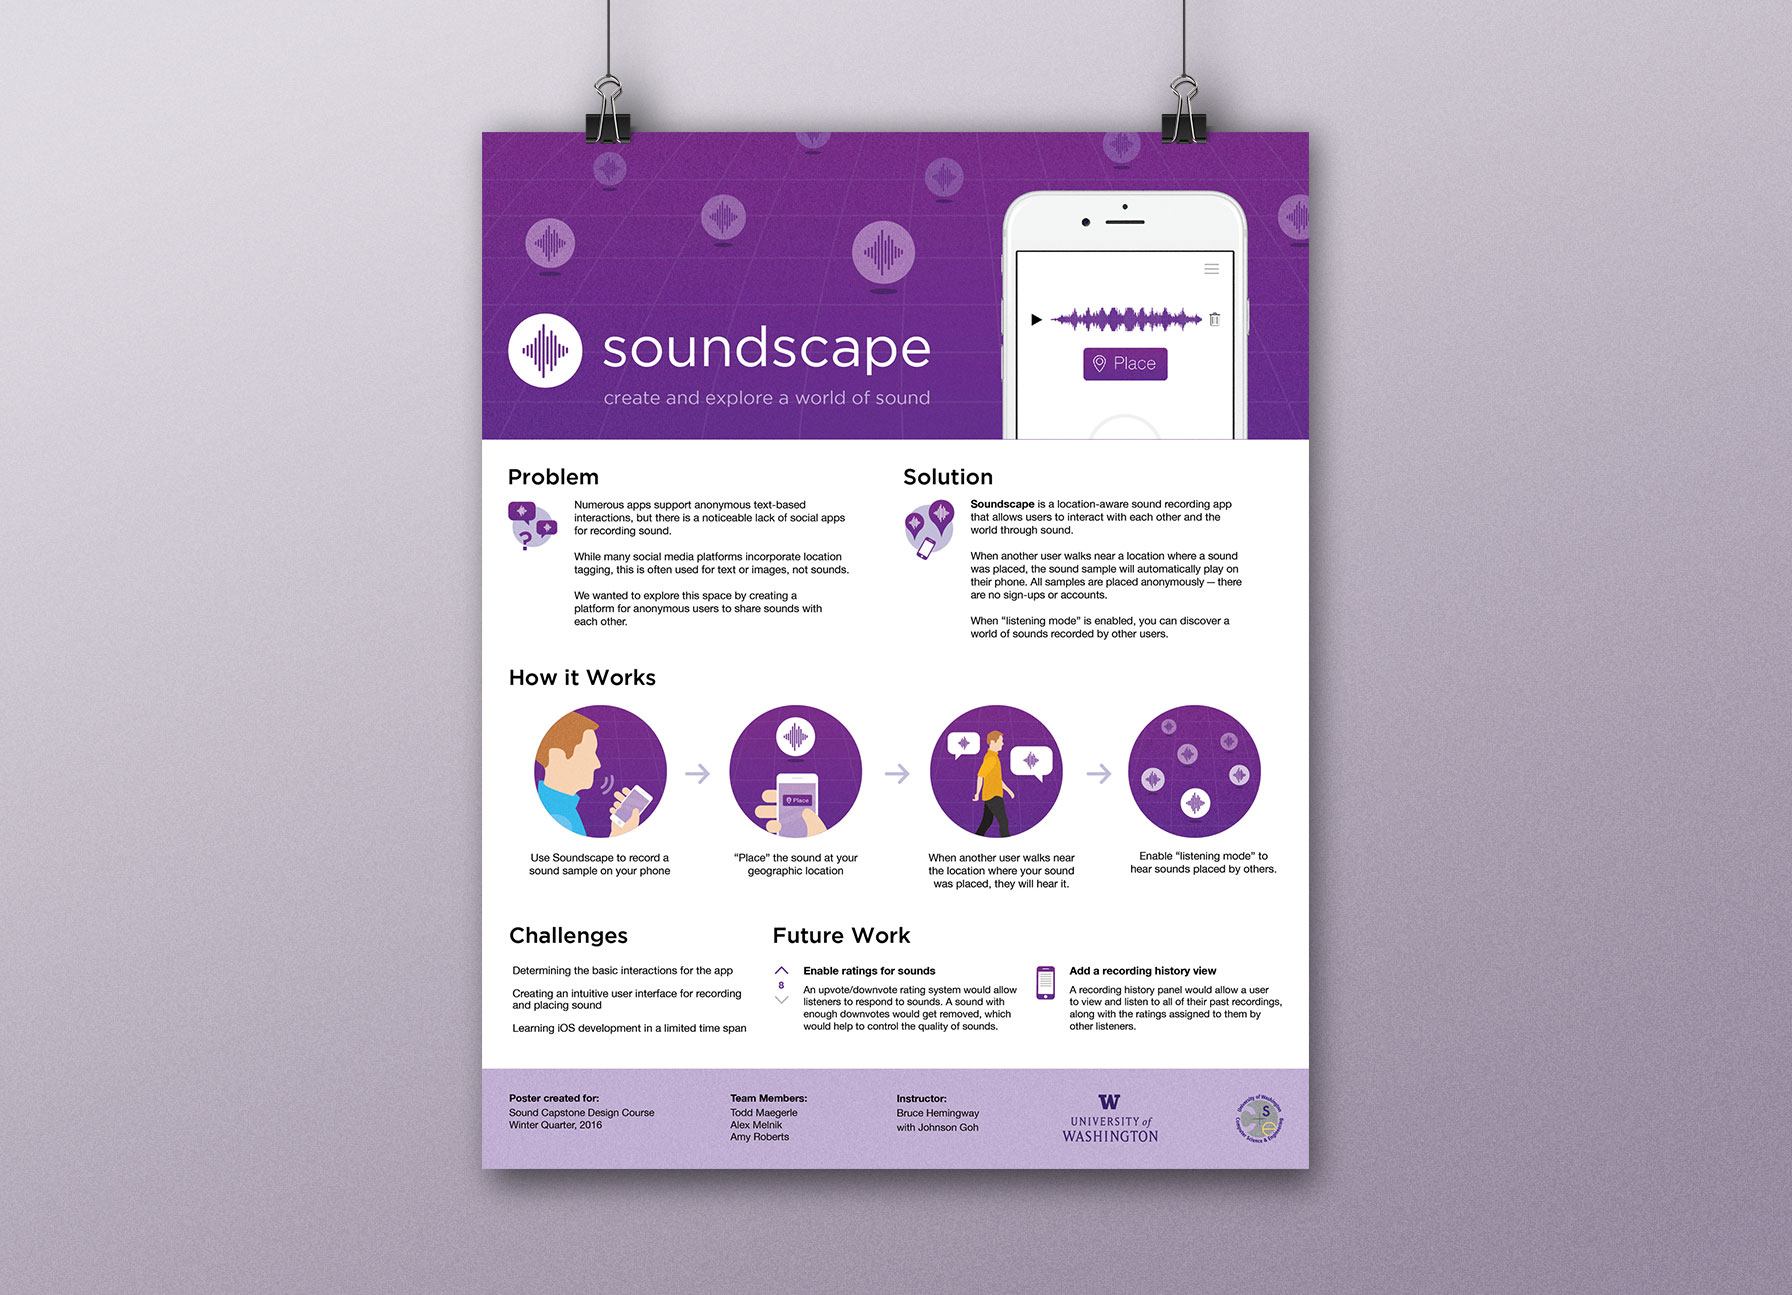 soundscape-poster-large